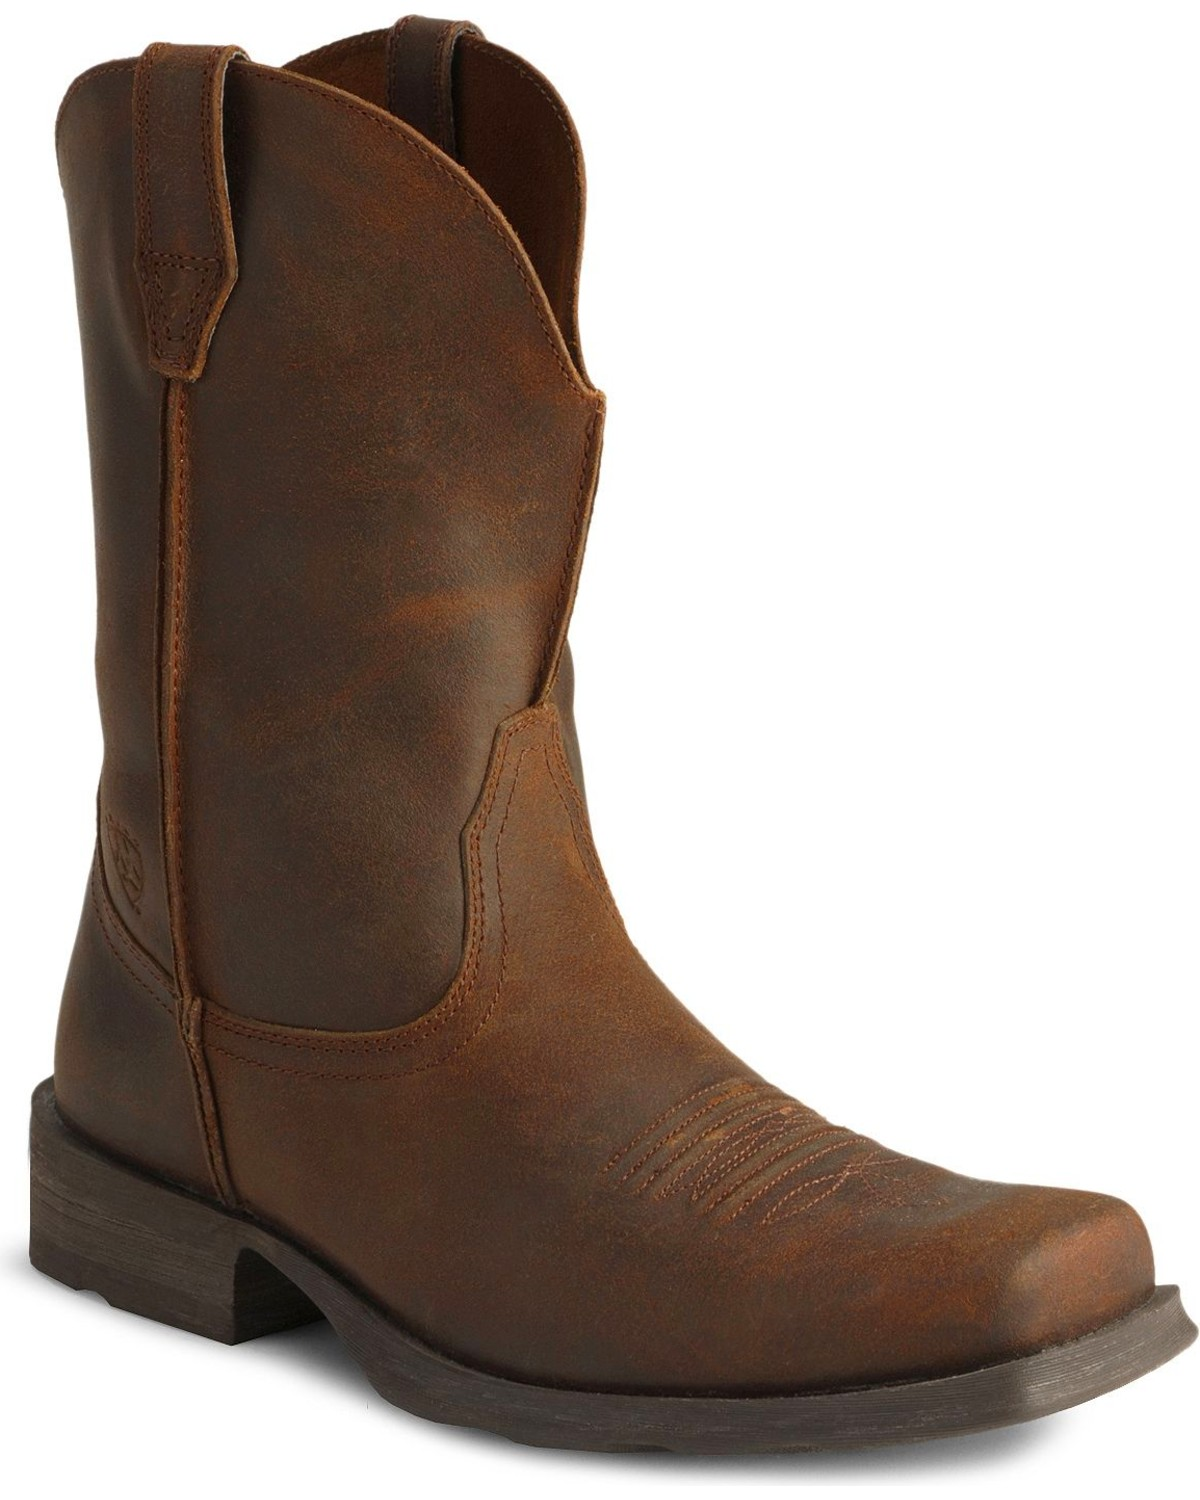 Ariat Distressed Rambler Cowboy Boots - Square Toe | Sheplers